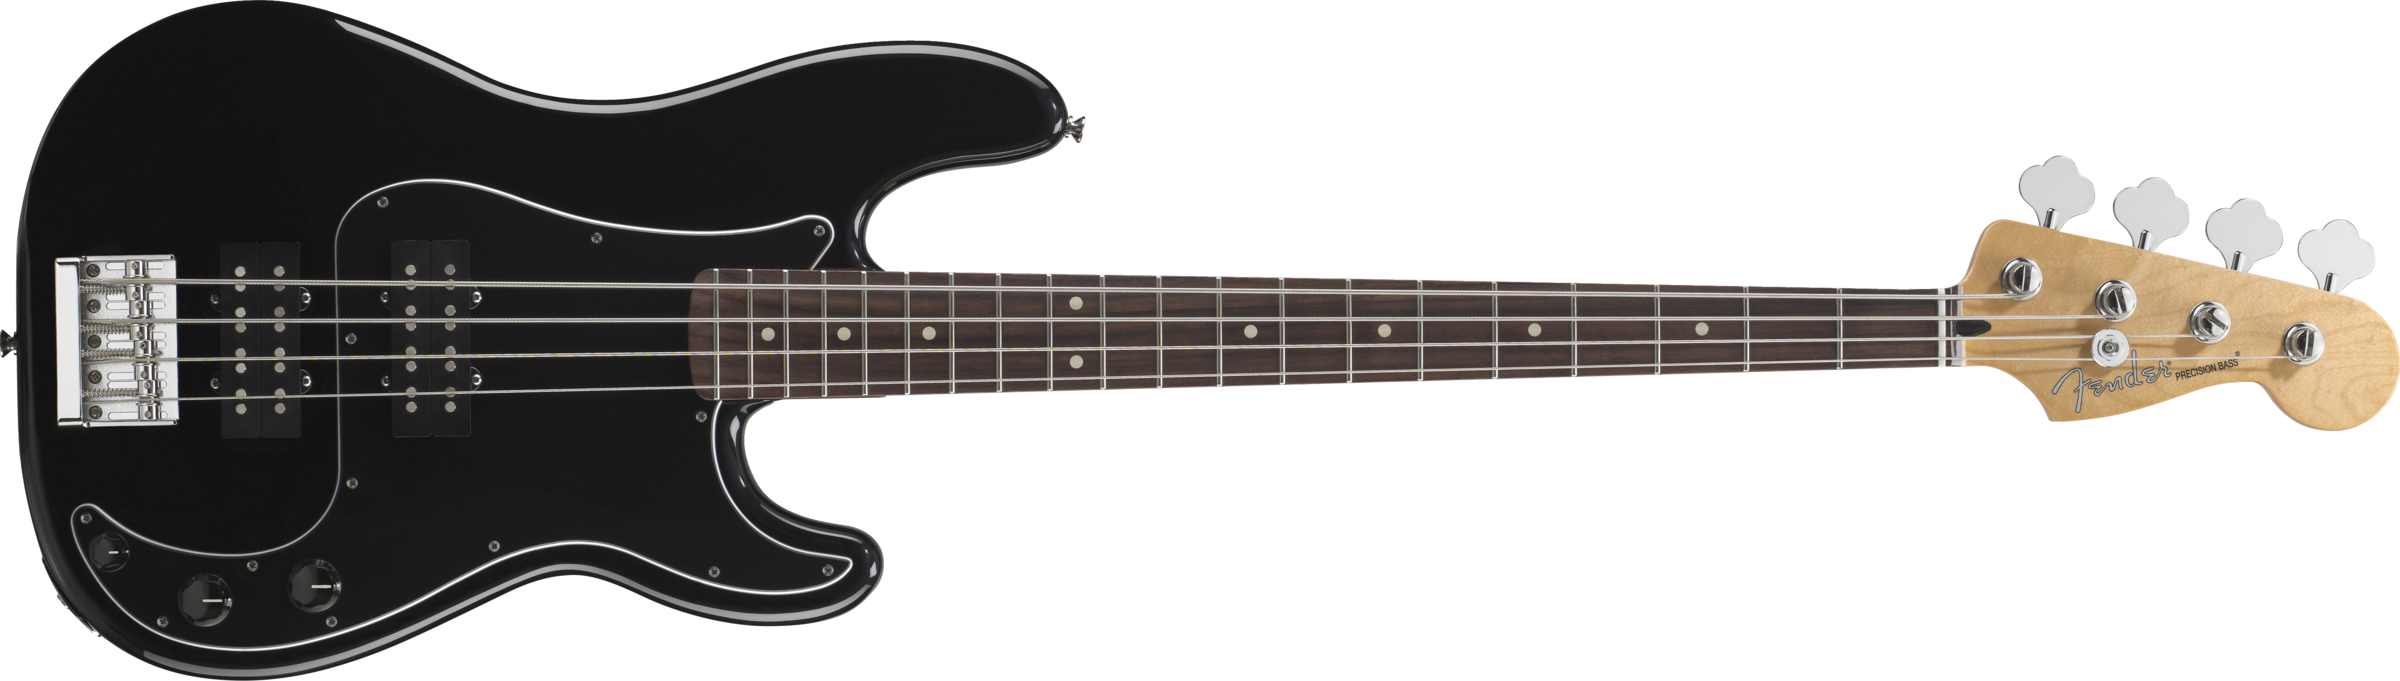 fender blacktop precision bass image 732108 audiofanzine. Black Bedroom Furniture Sets. Home Design Ideas